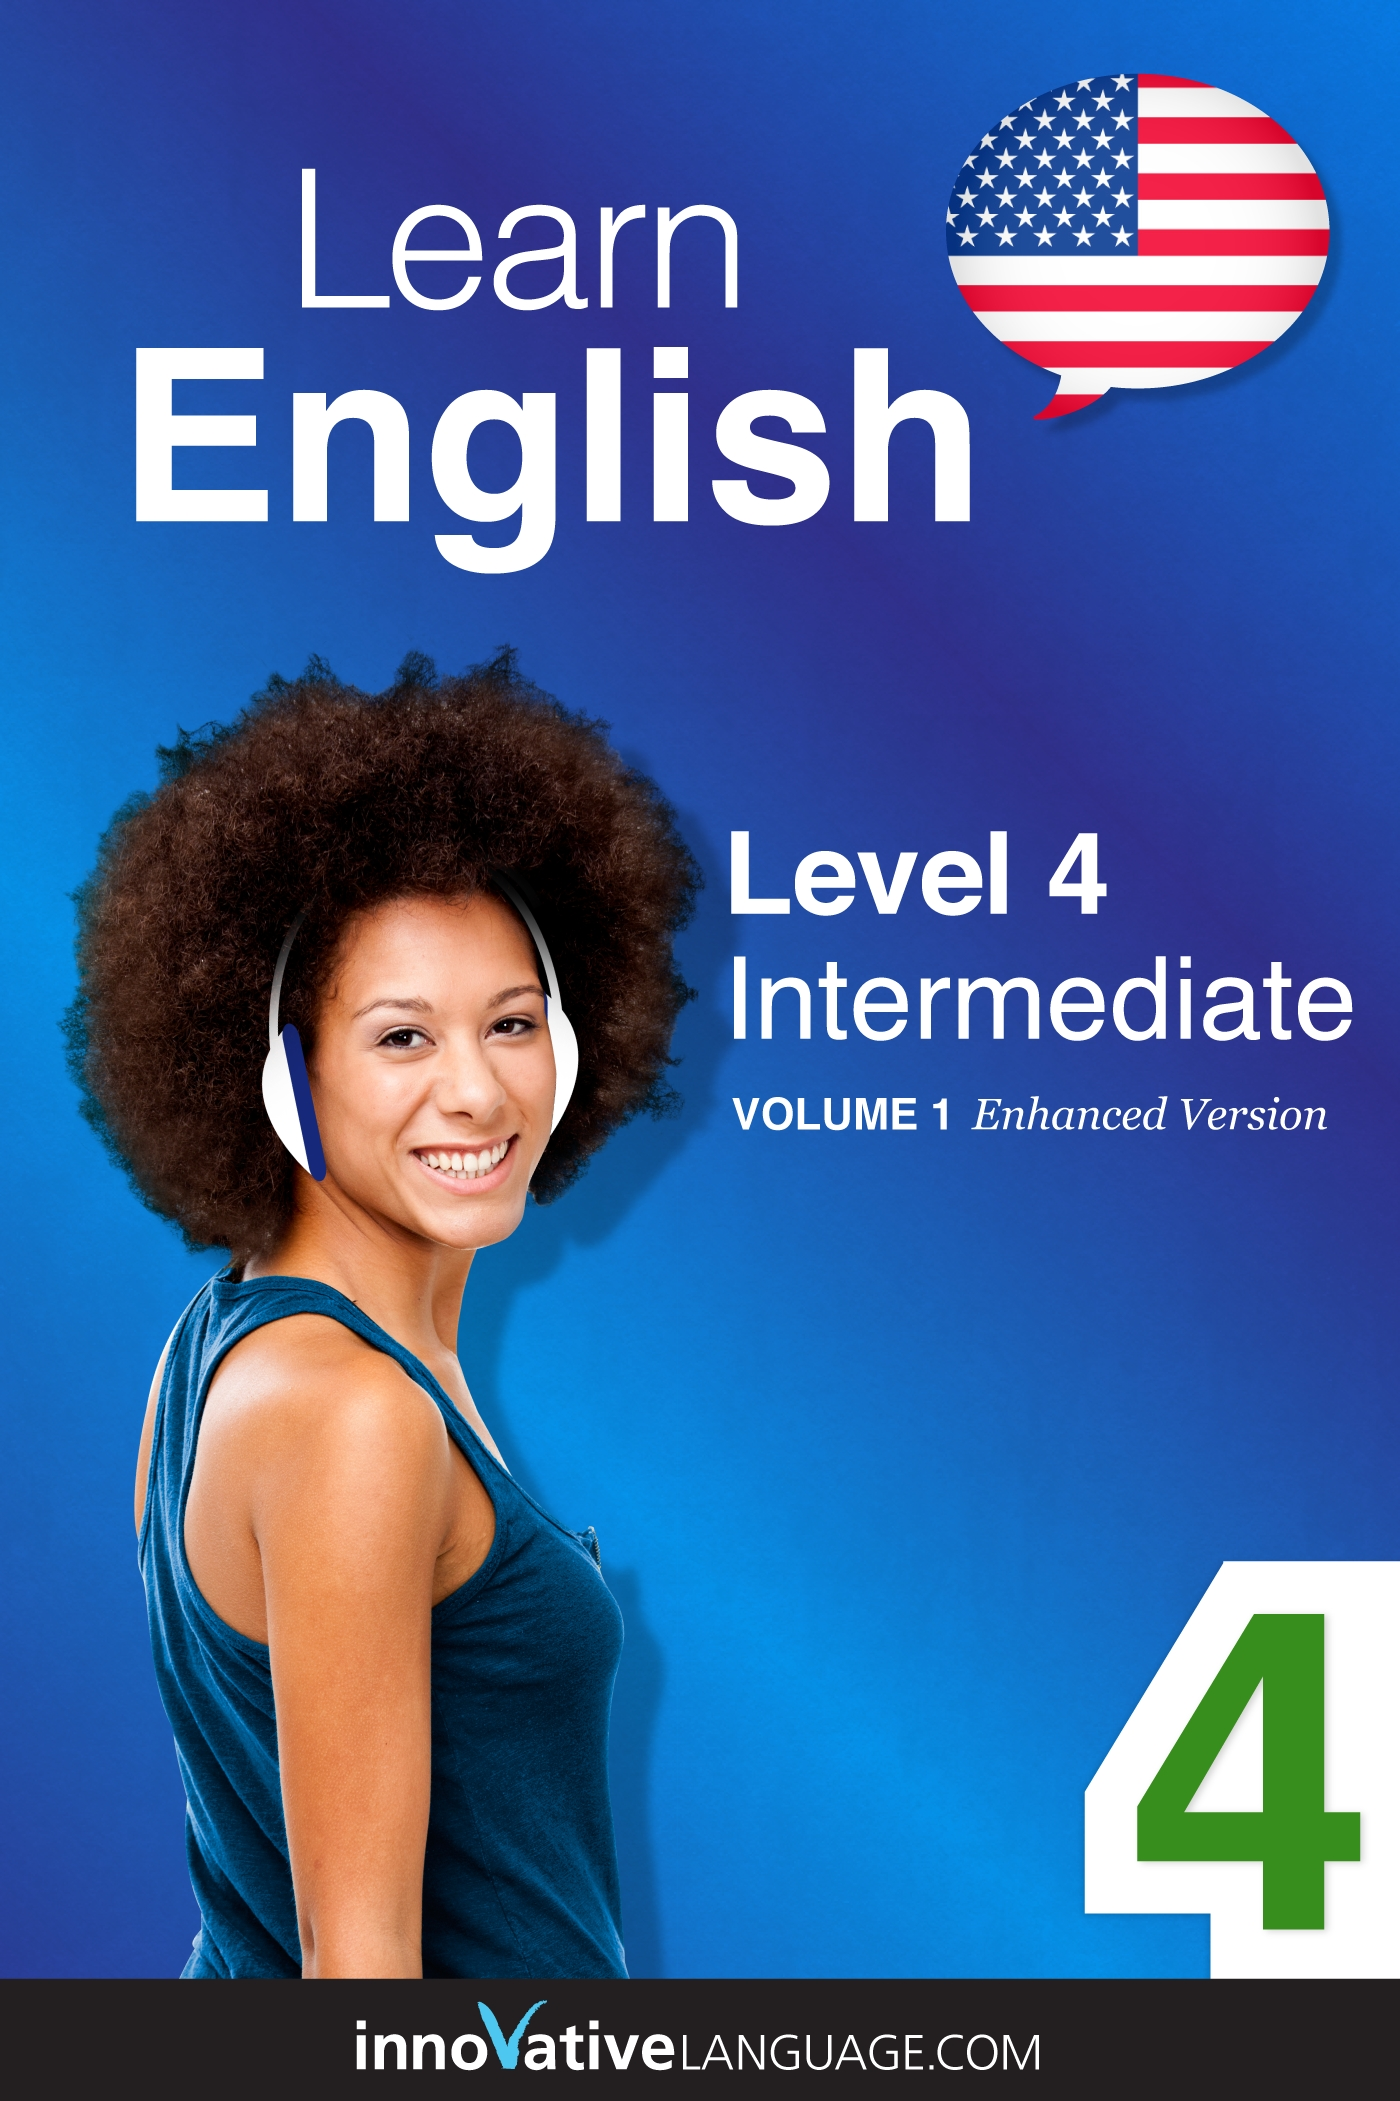 [eBook] Learn English - Level 4: Intermediate